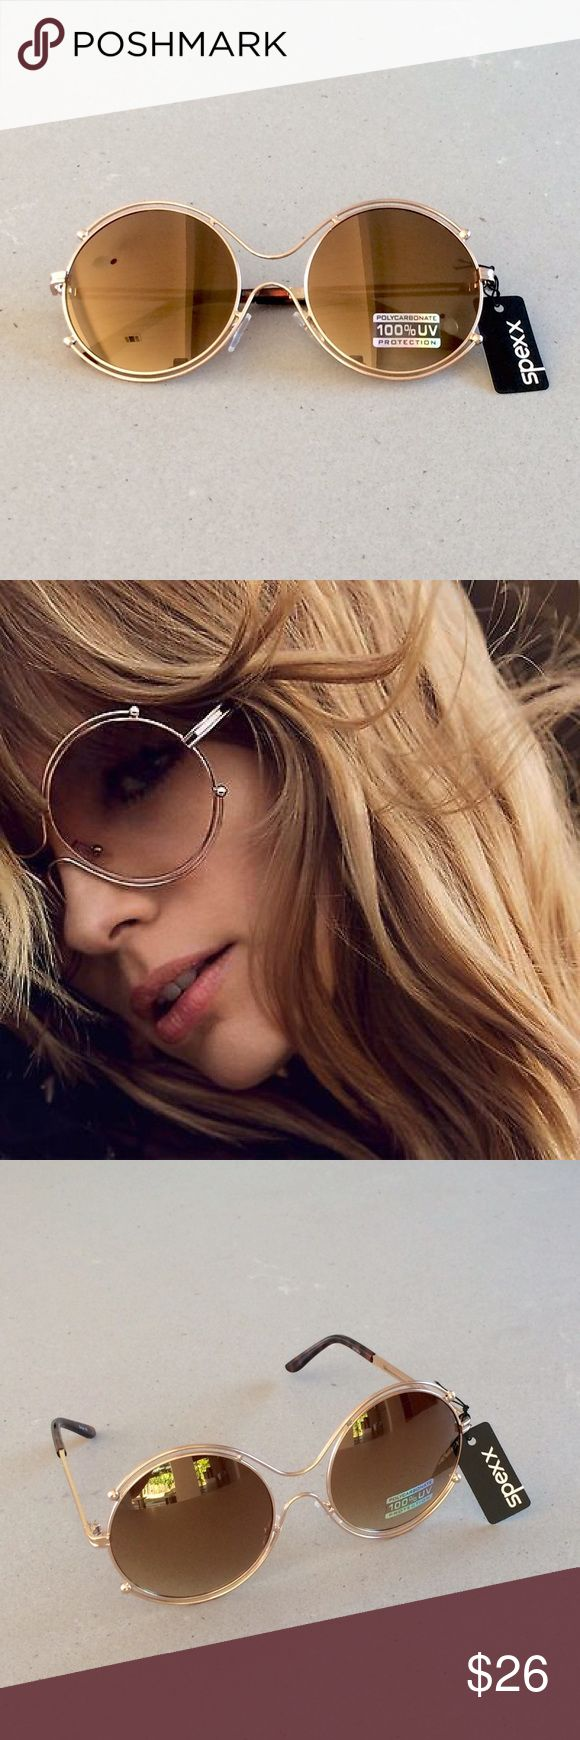 Oversized Brown Mirrored Sunnies These oversized brown mirrored sunnies are not only super cute but they are have 100% UV protection (UV 400 lens technology) 😎 spexx Accessories Sunglasses